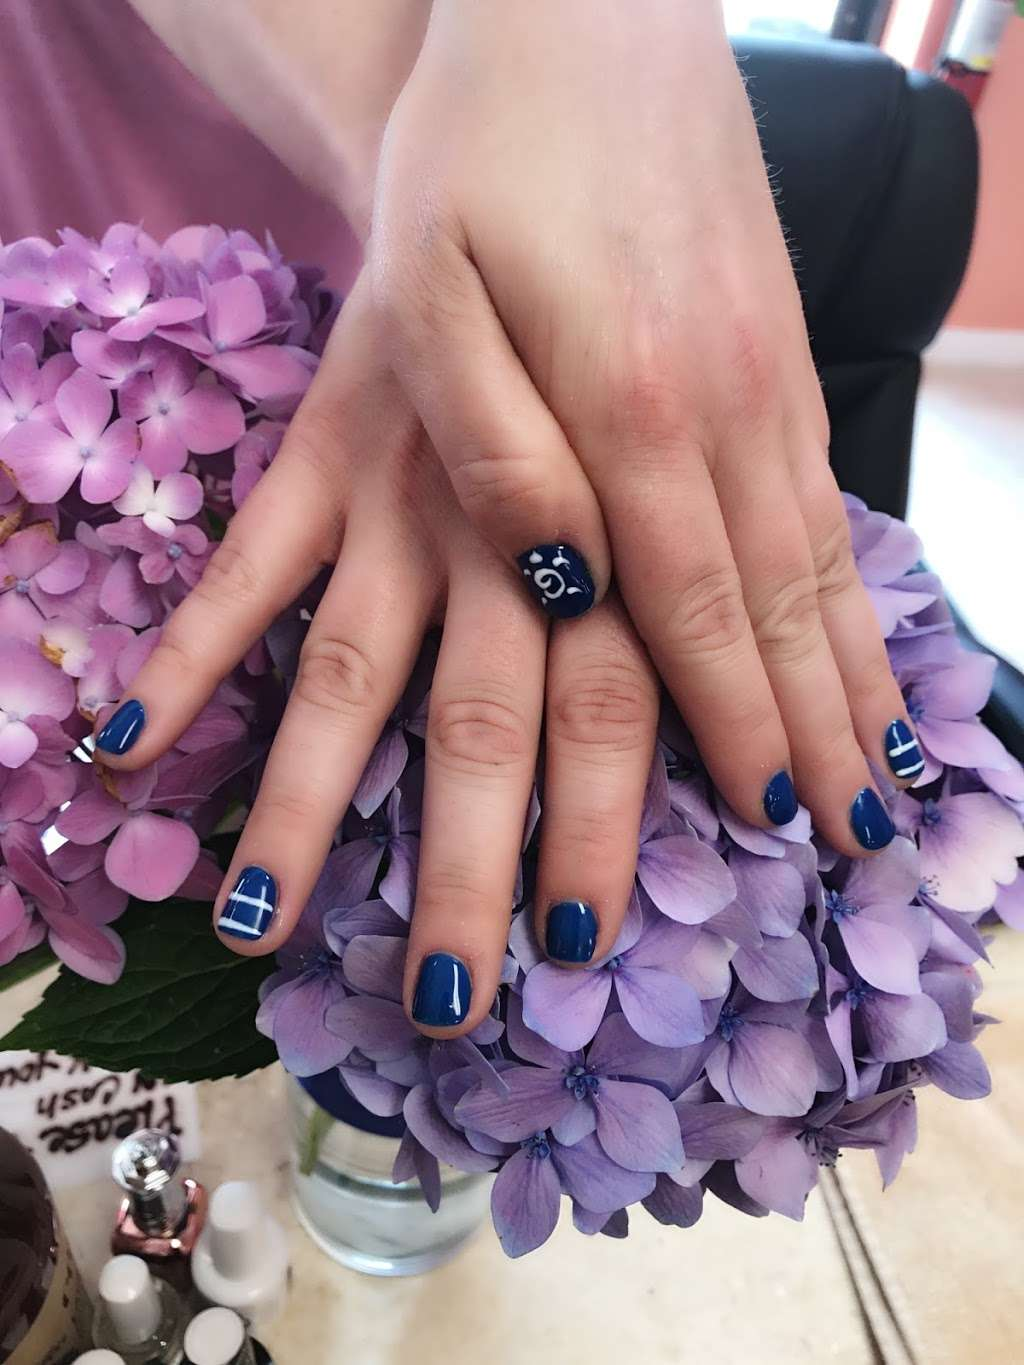 Annie Nails and Spa - hair care  | Photo 4 of 10 | Address: 240 Lakeview Ave, Tyngsborough, MA 01879, USA | Phone: (978) 226-5724